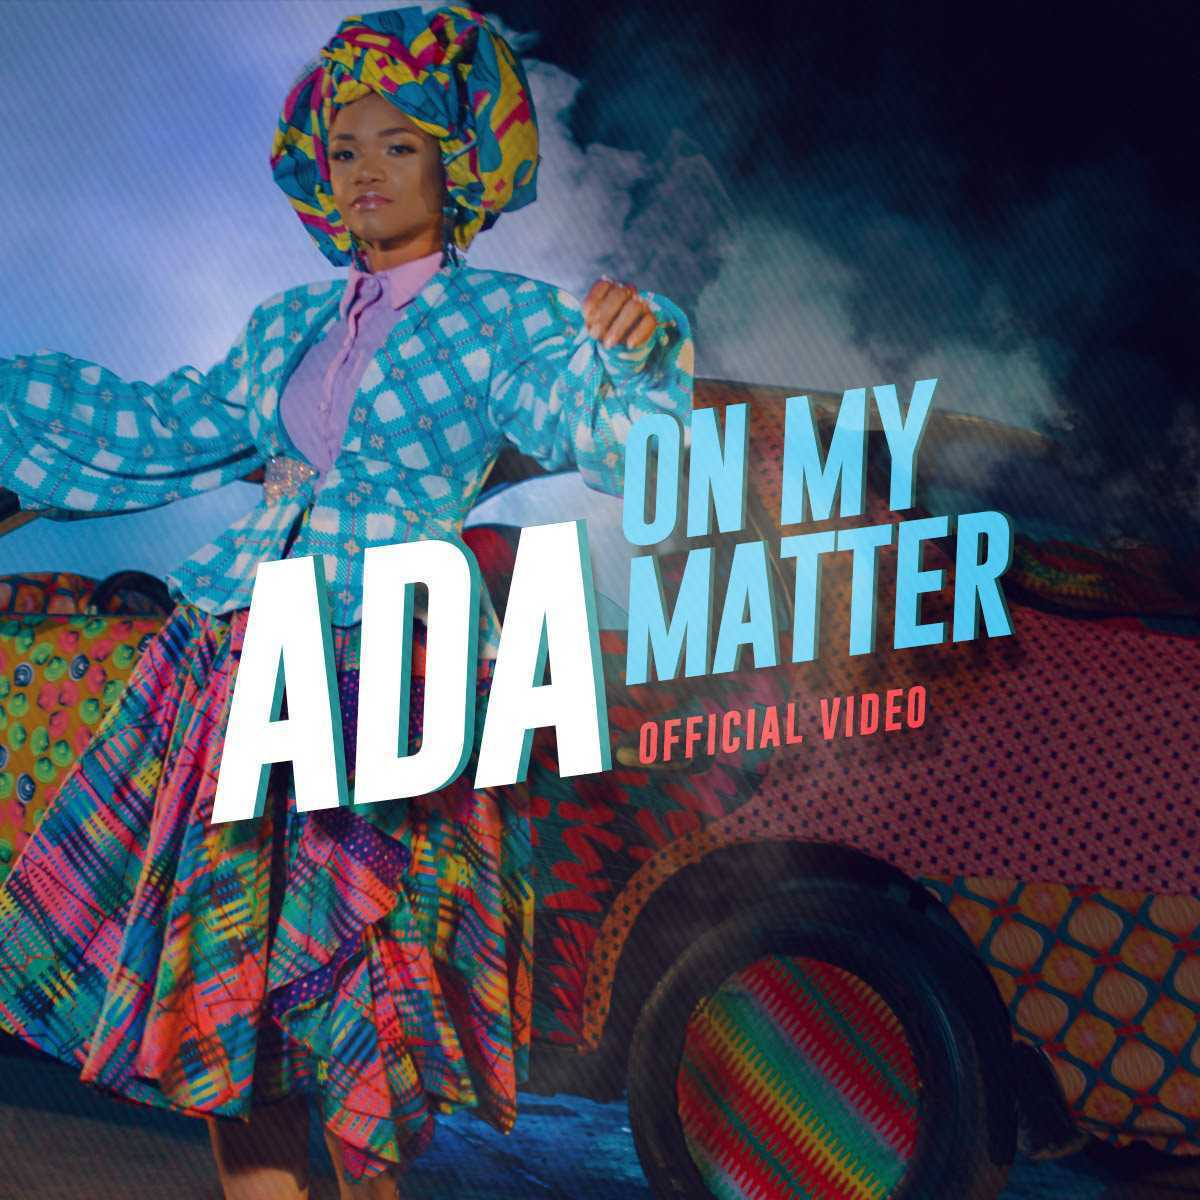 DOWNLOAD N THE MATTER MP3 FREE DOWNLOAD